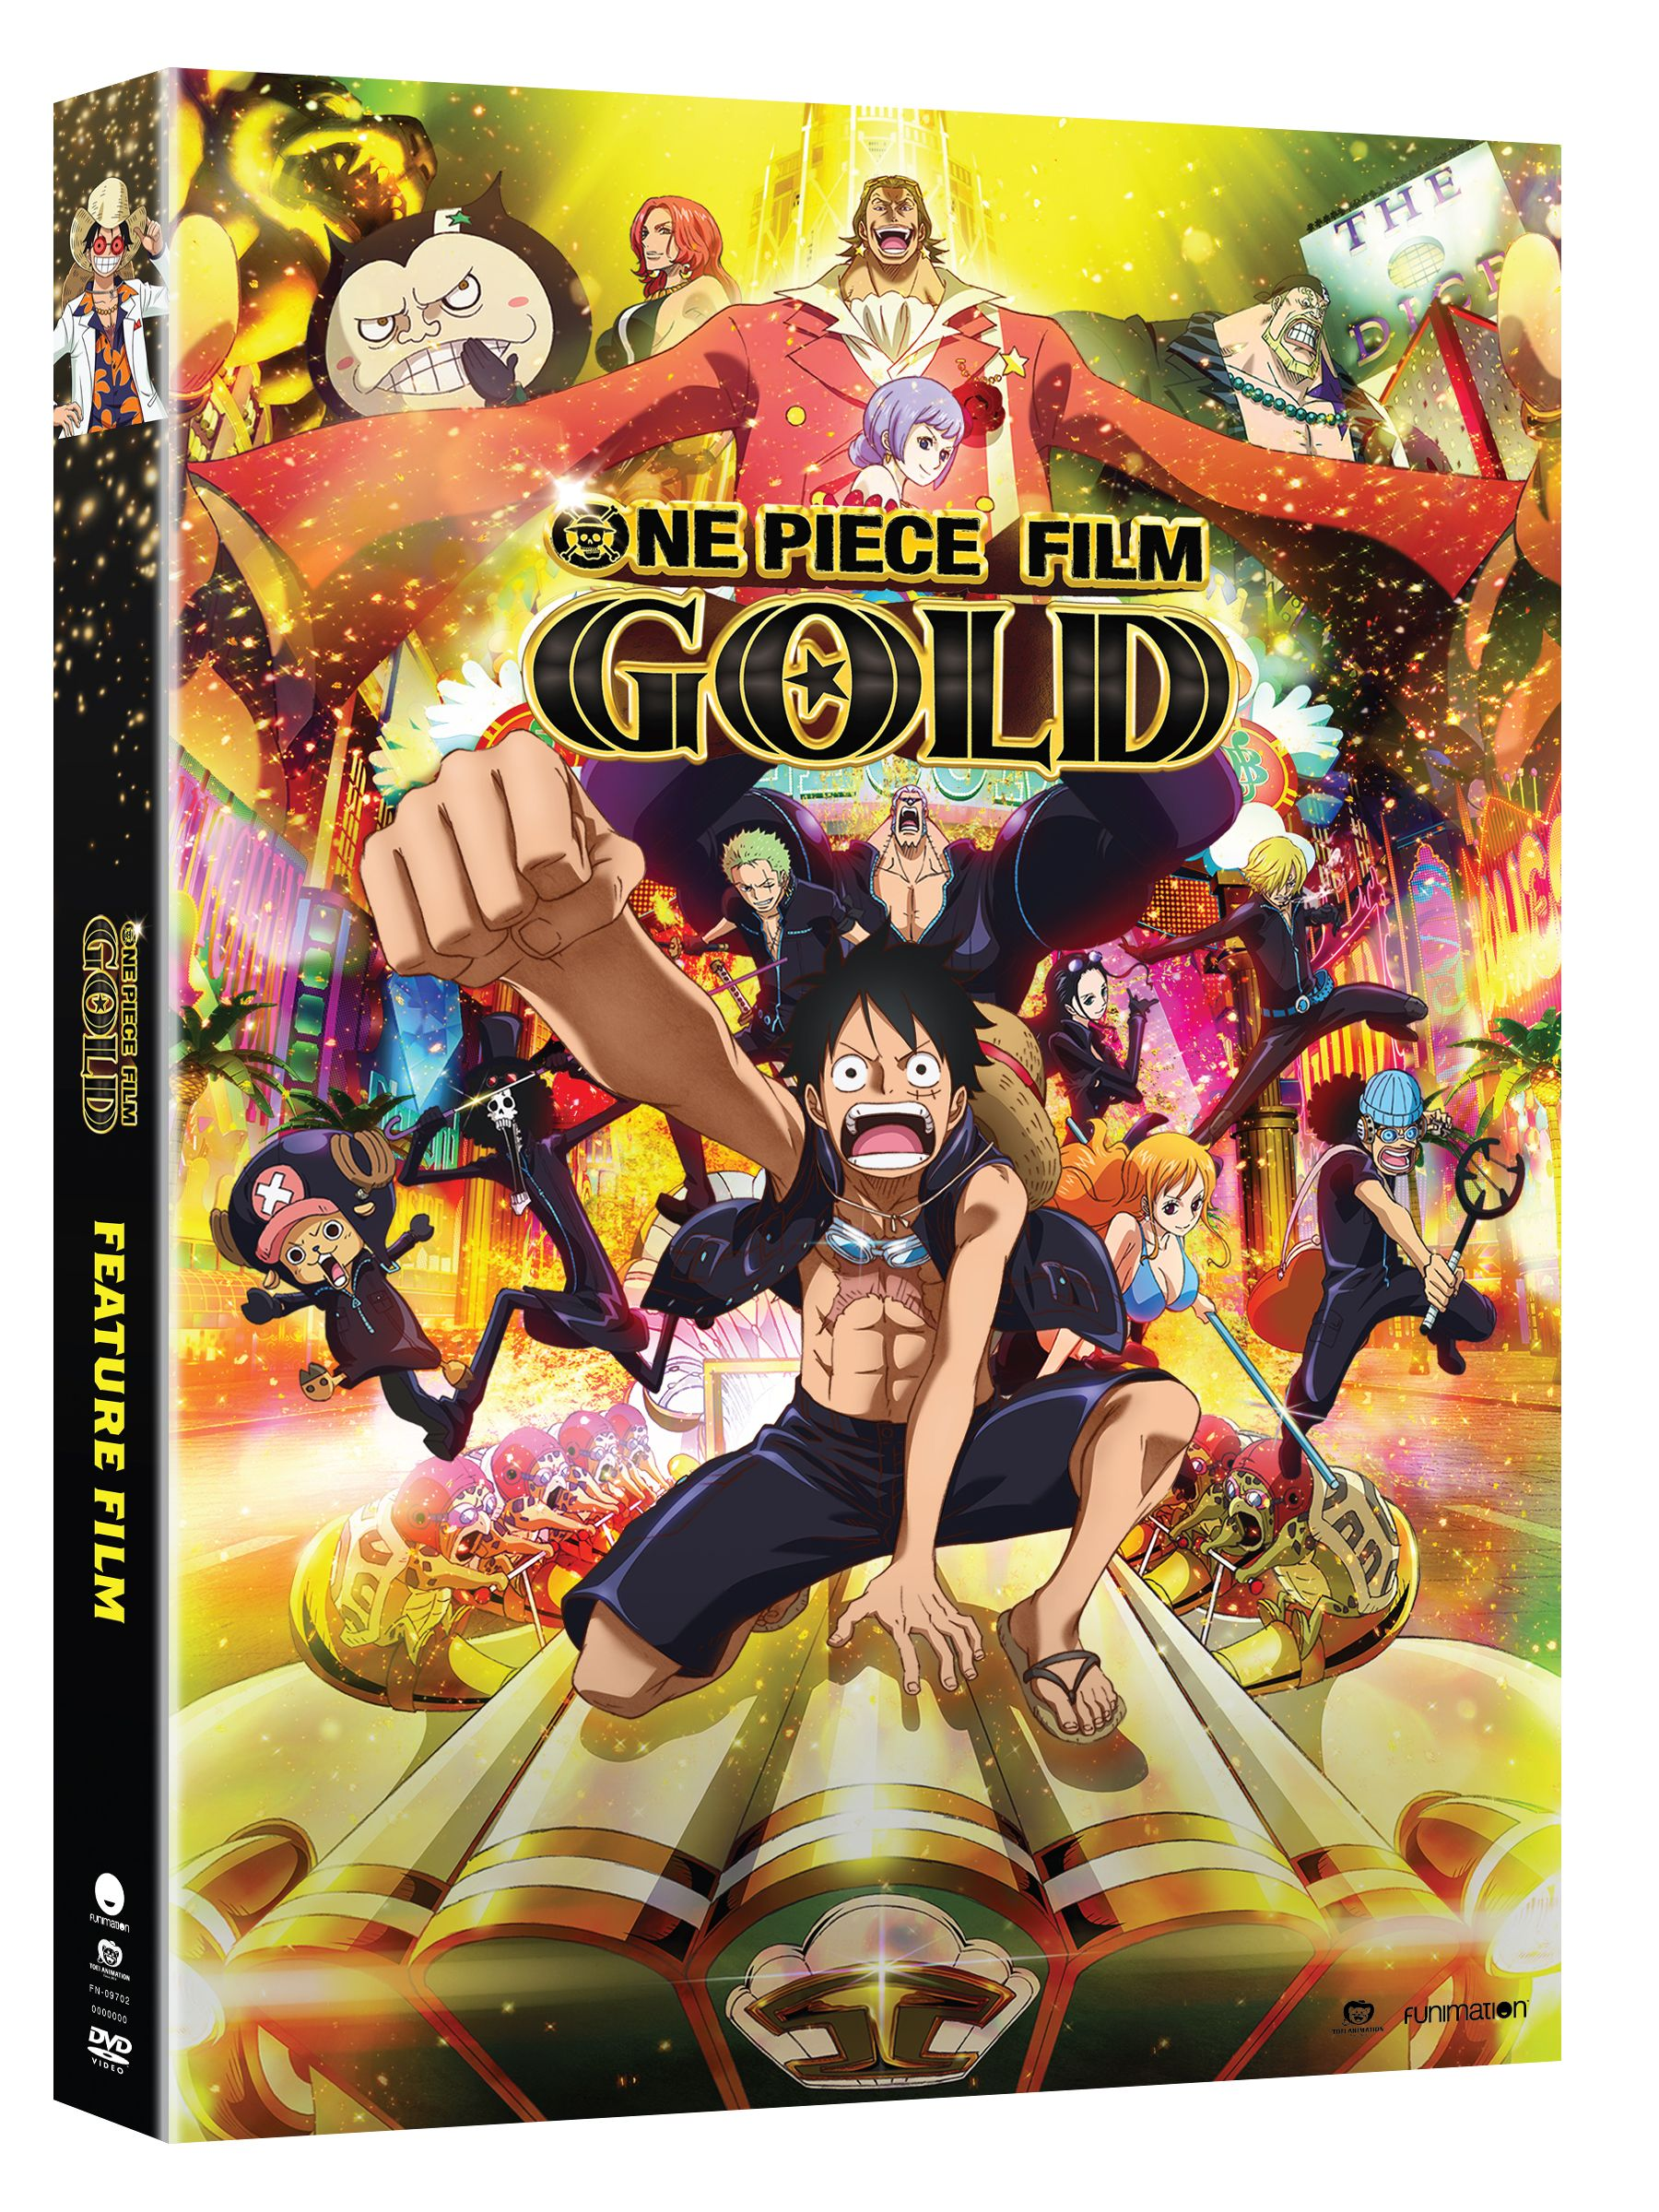 One Piece Gold Streaming Vf : piece, streaming, Piece, Movie, Gambar, Kartun,, Animasi, Kartun